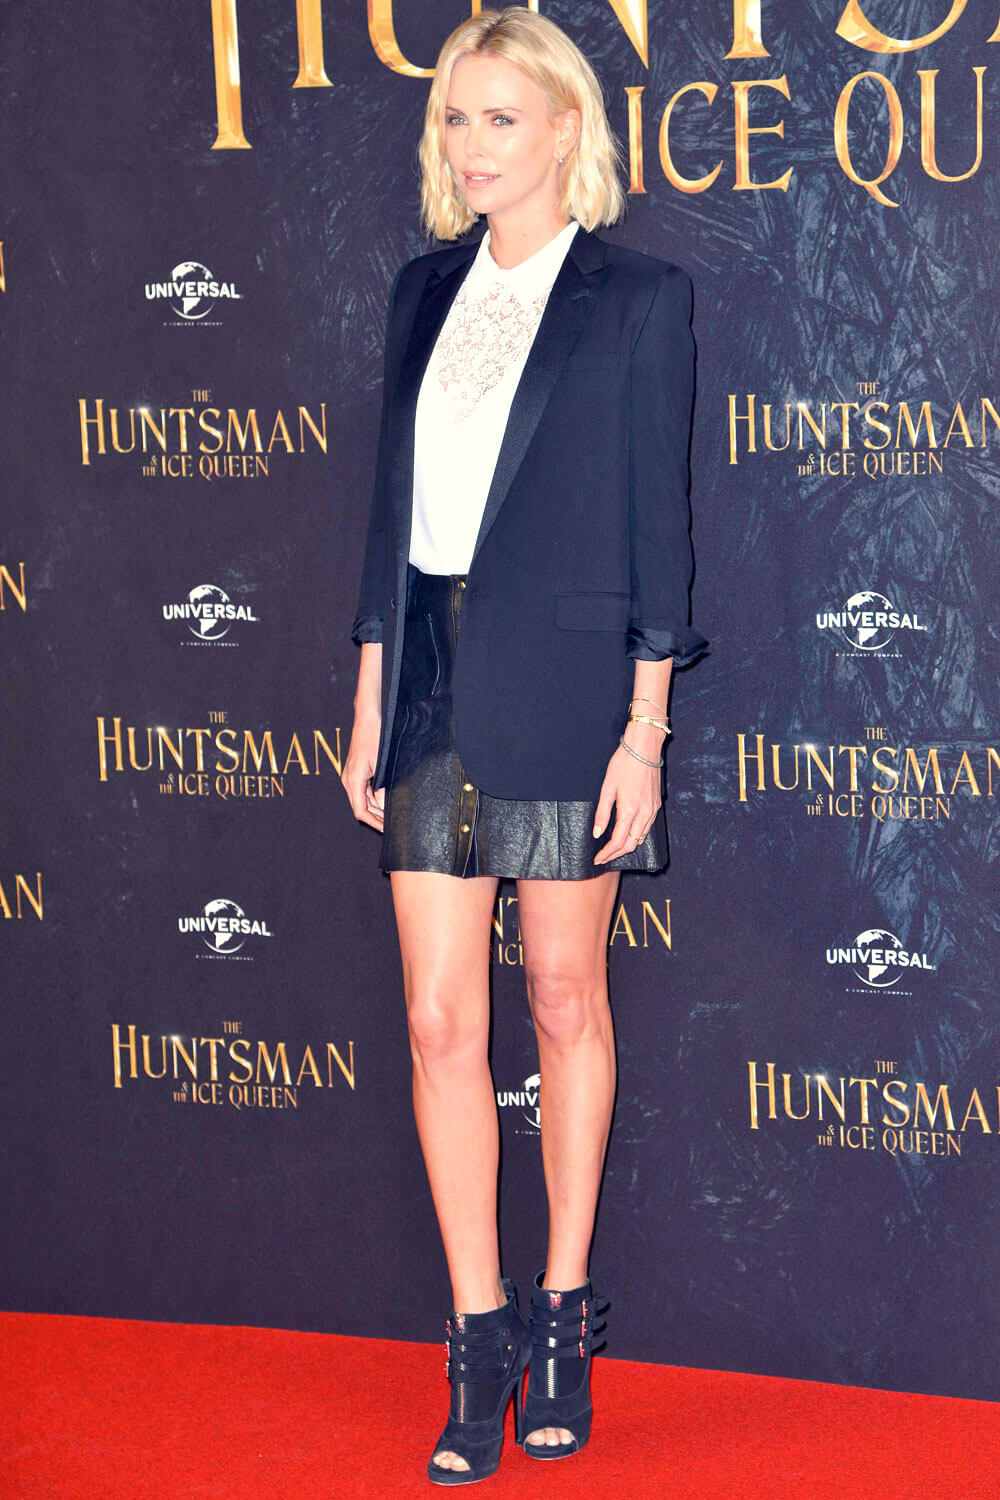 Charlize Theron promoting her new movie Huntsman